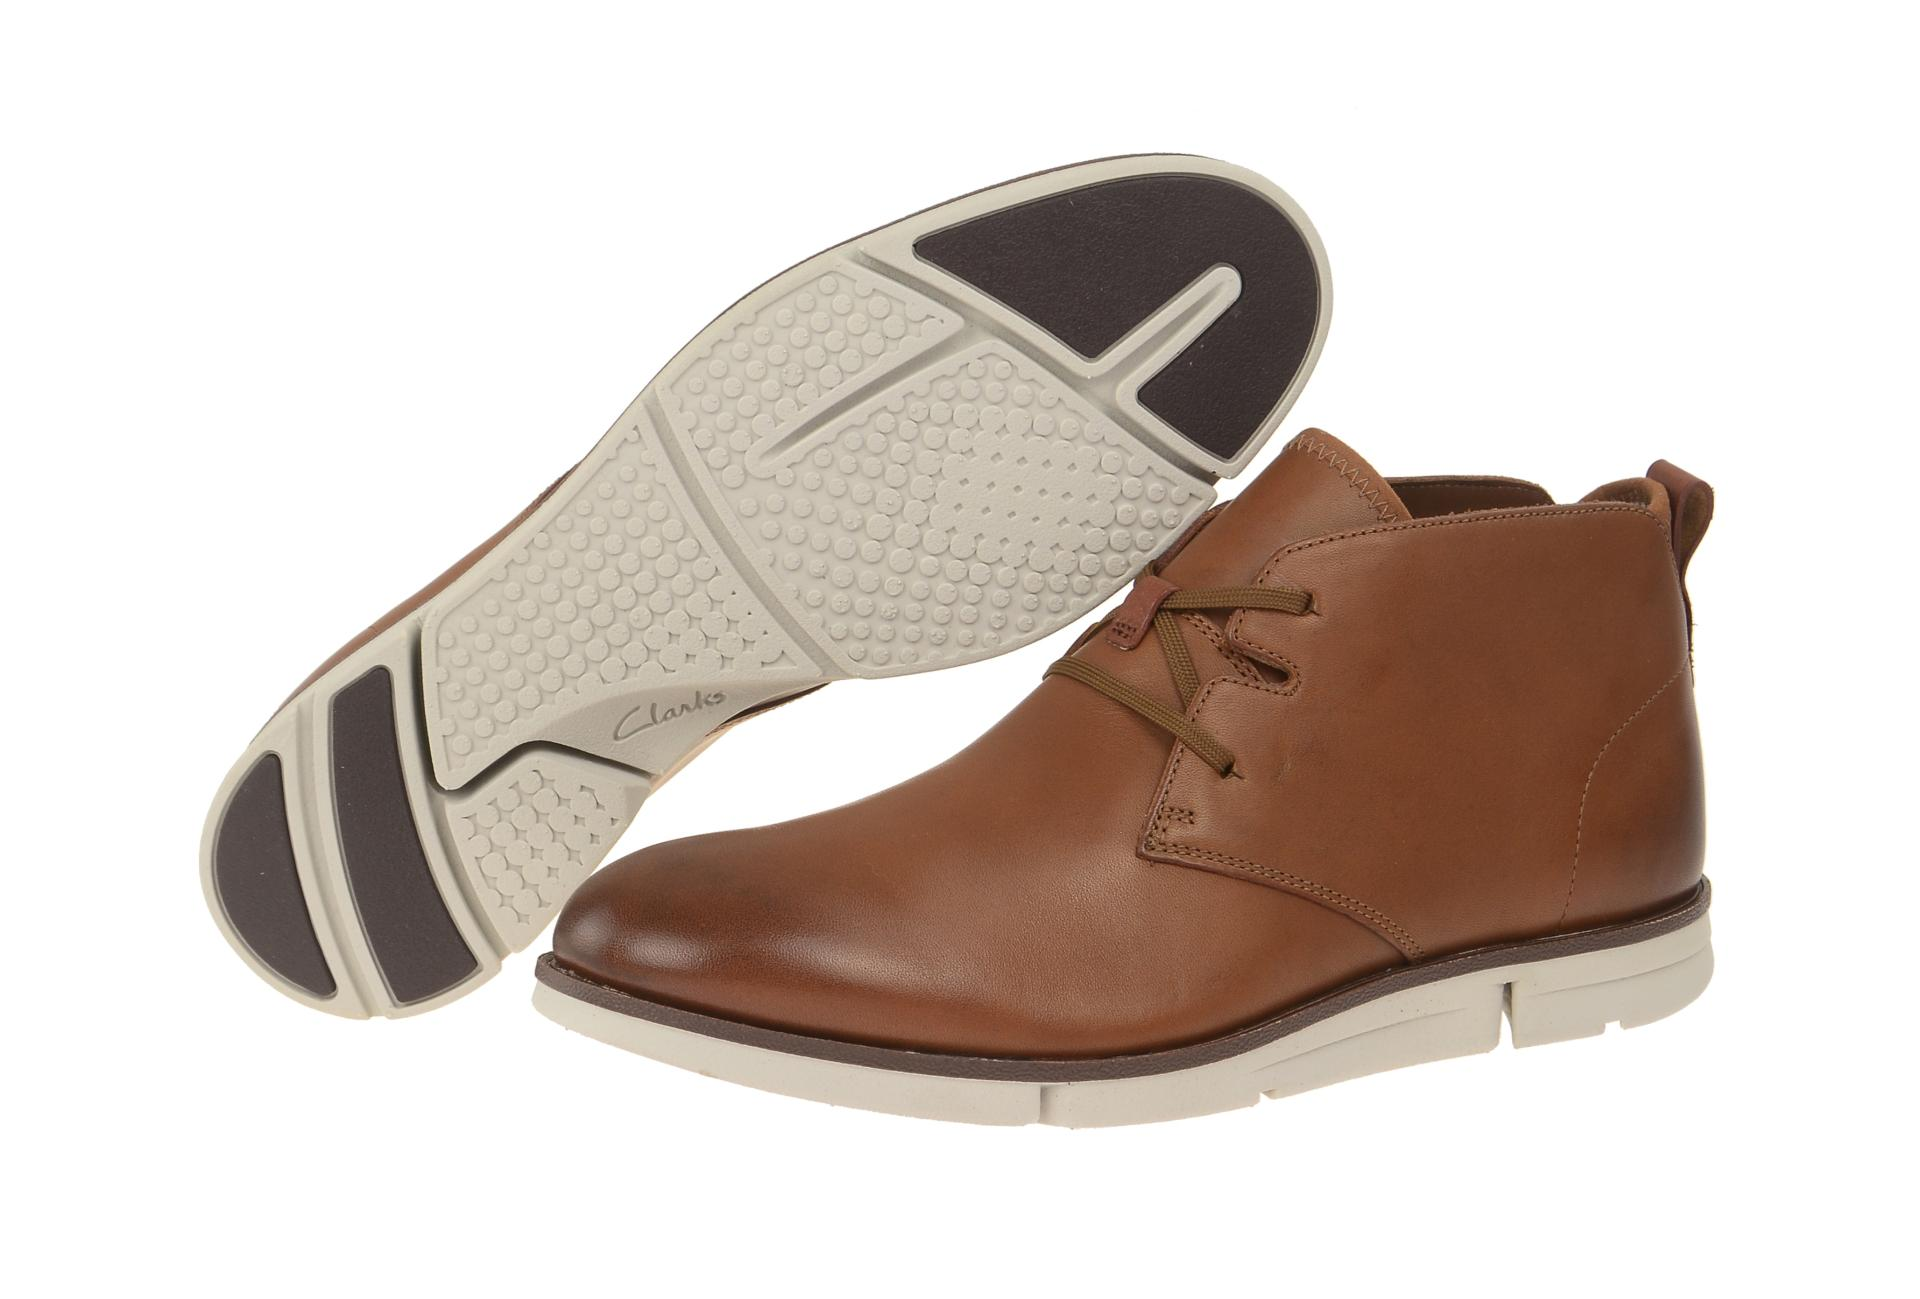 clarks shoes sale started in store today 28 images